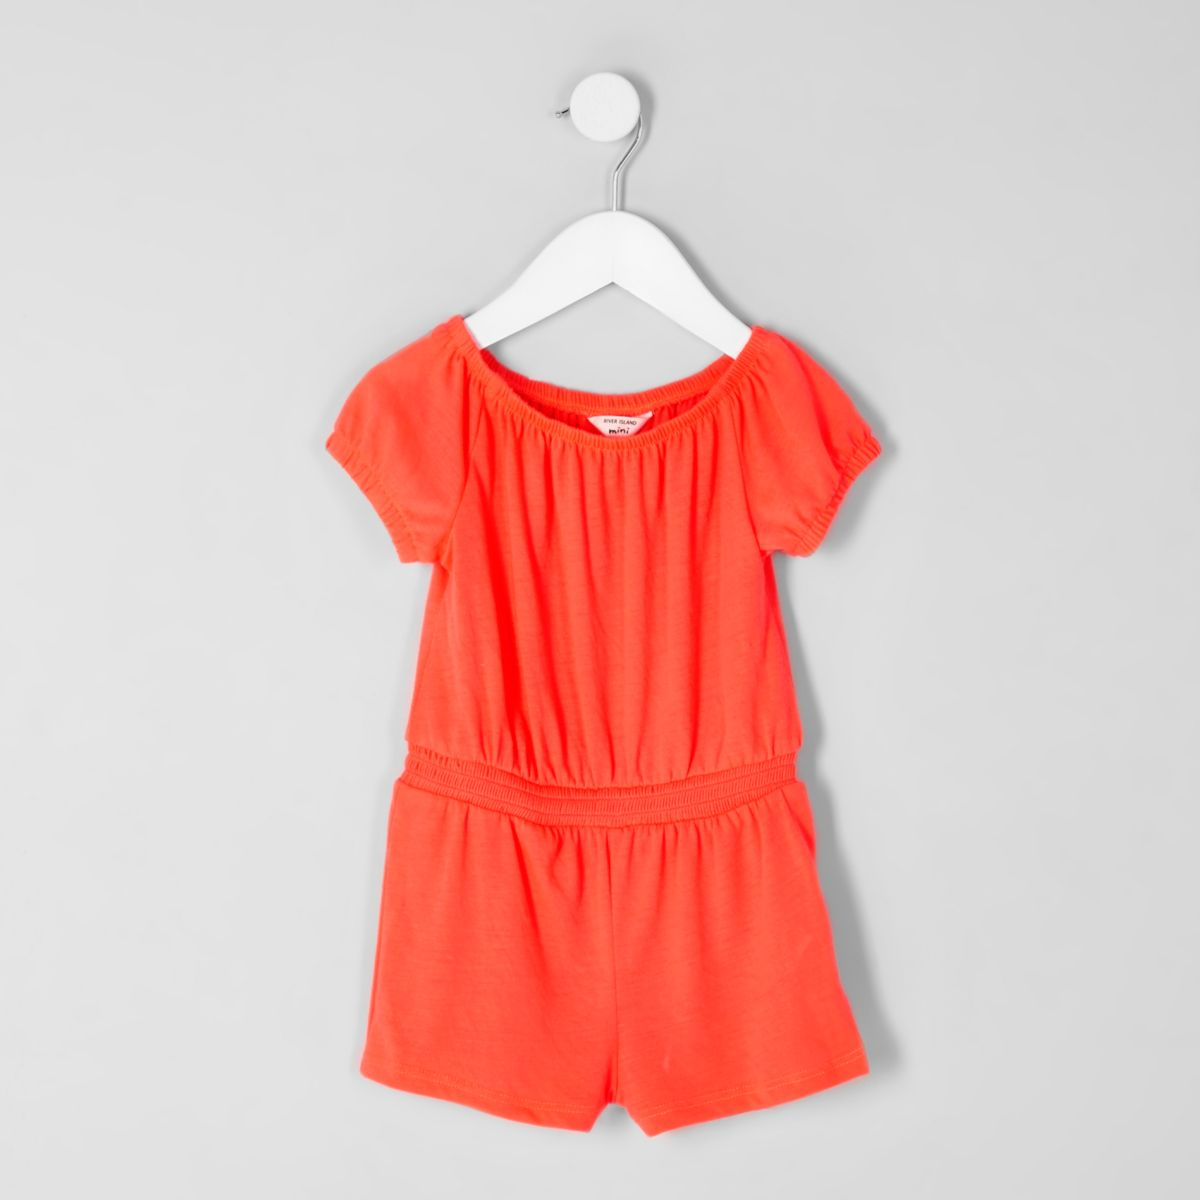 Bardot-Playsuit in Koralle